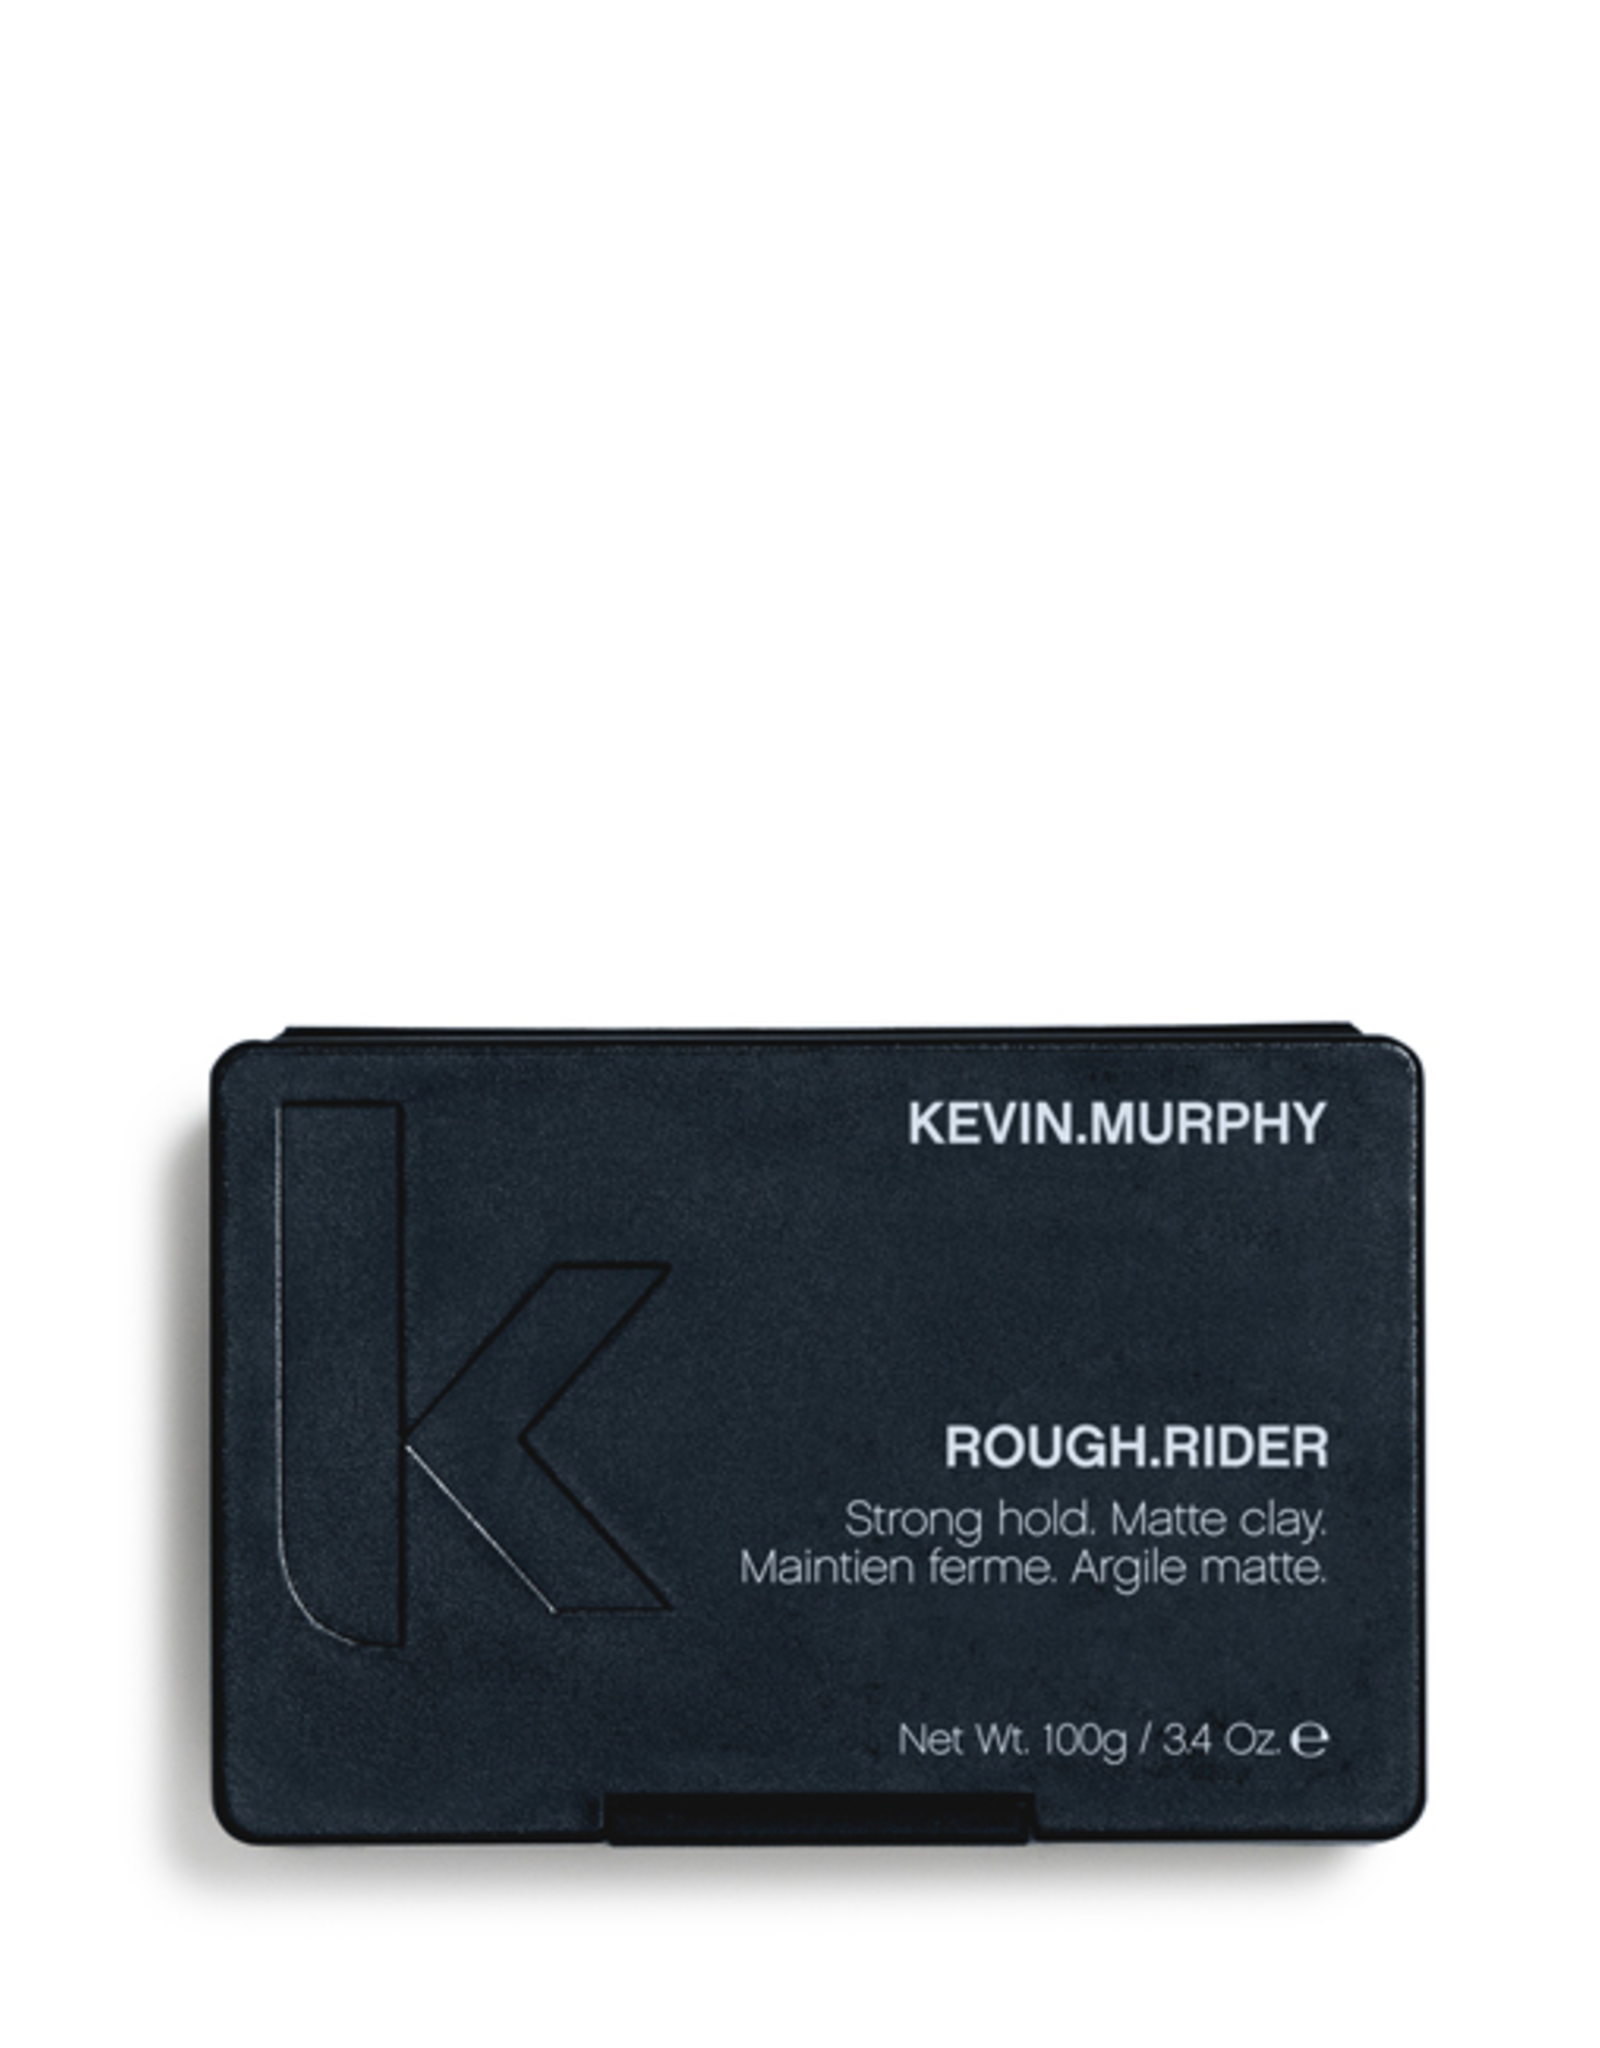 KEVIN.MURPHY Rough.Rider (100 g)